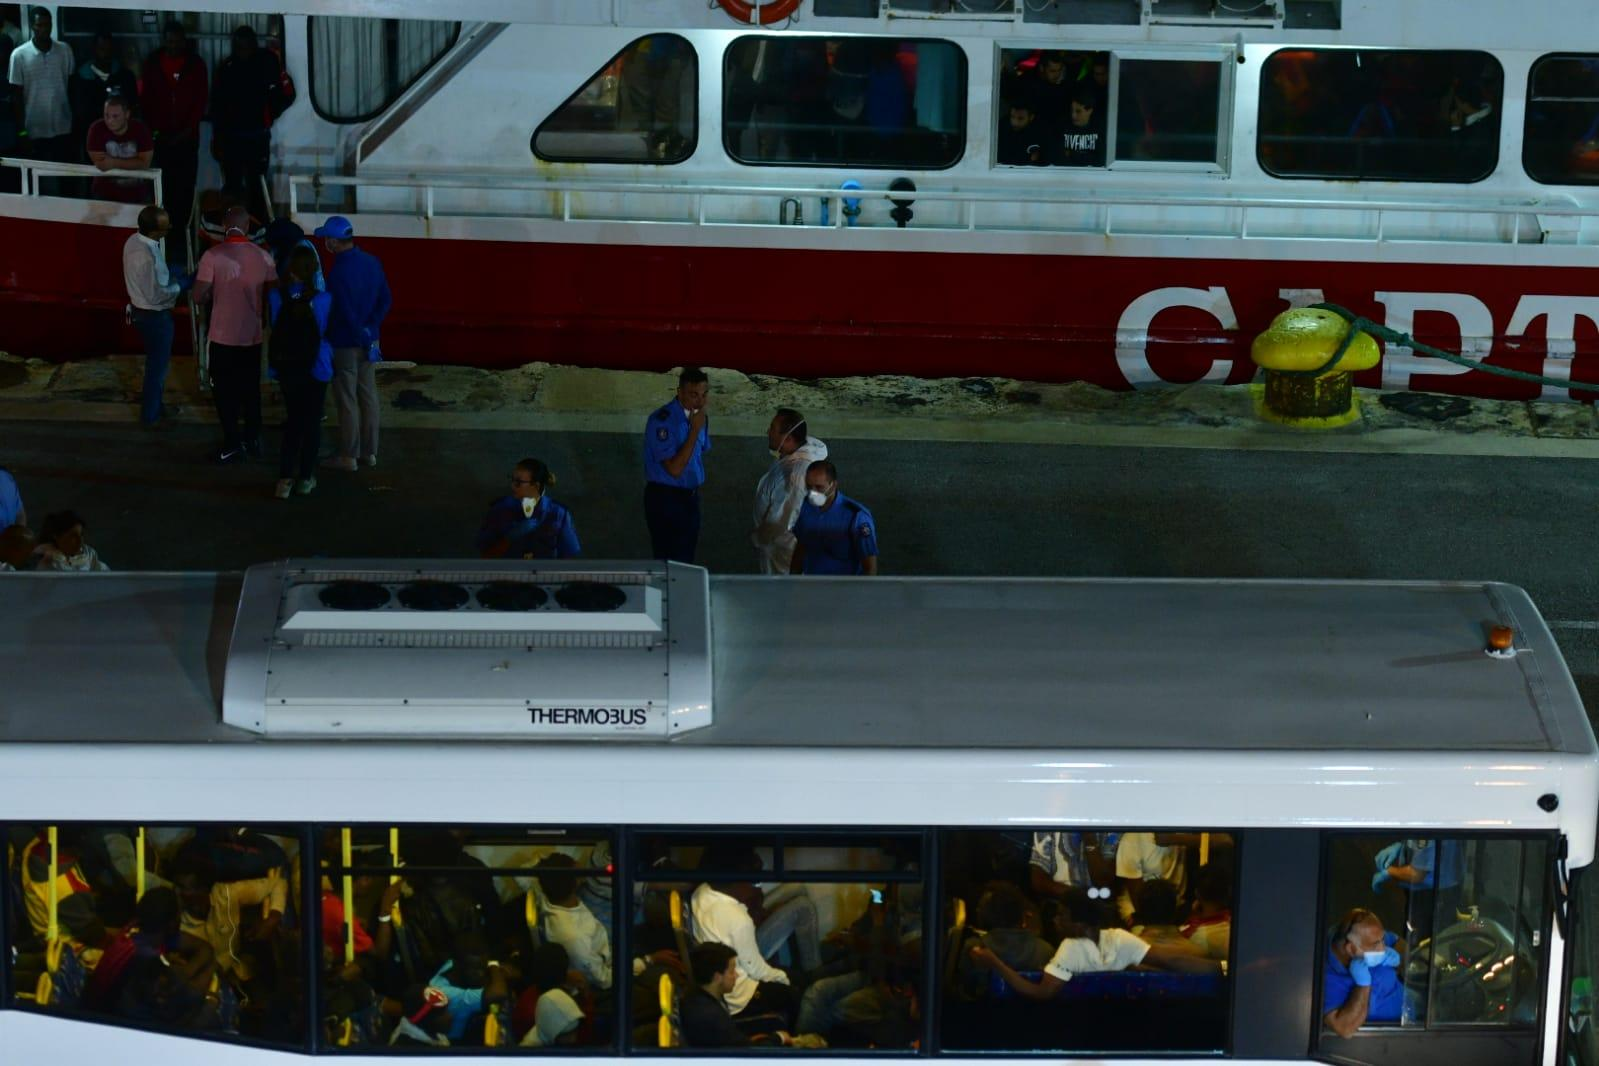 The migrants being put on buses for transport to Hal Far detention centre.